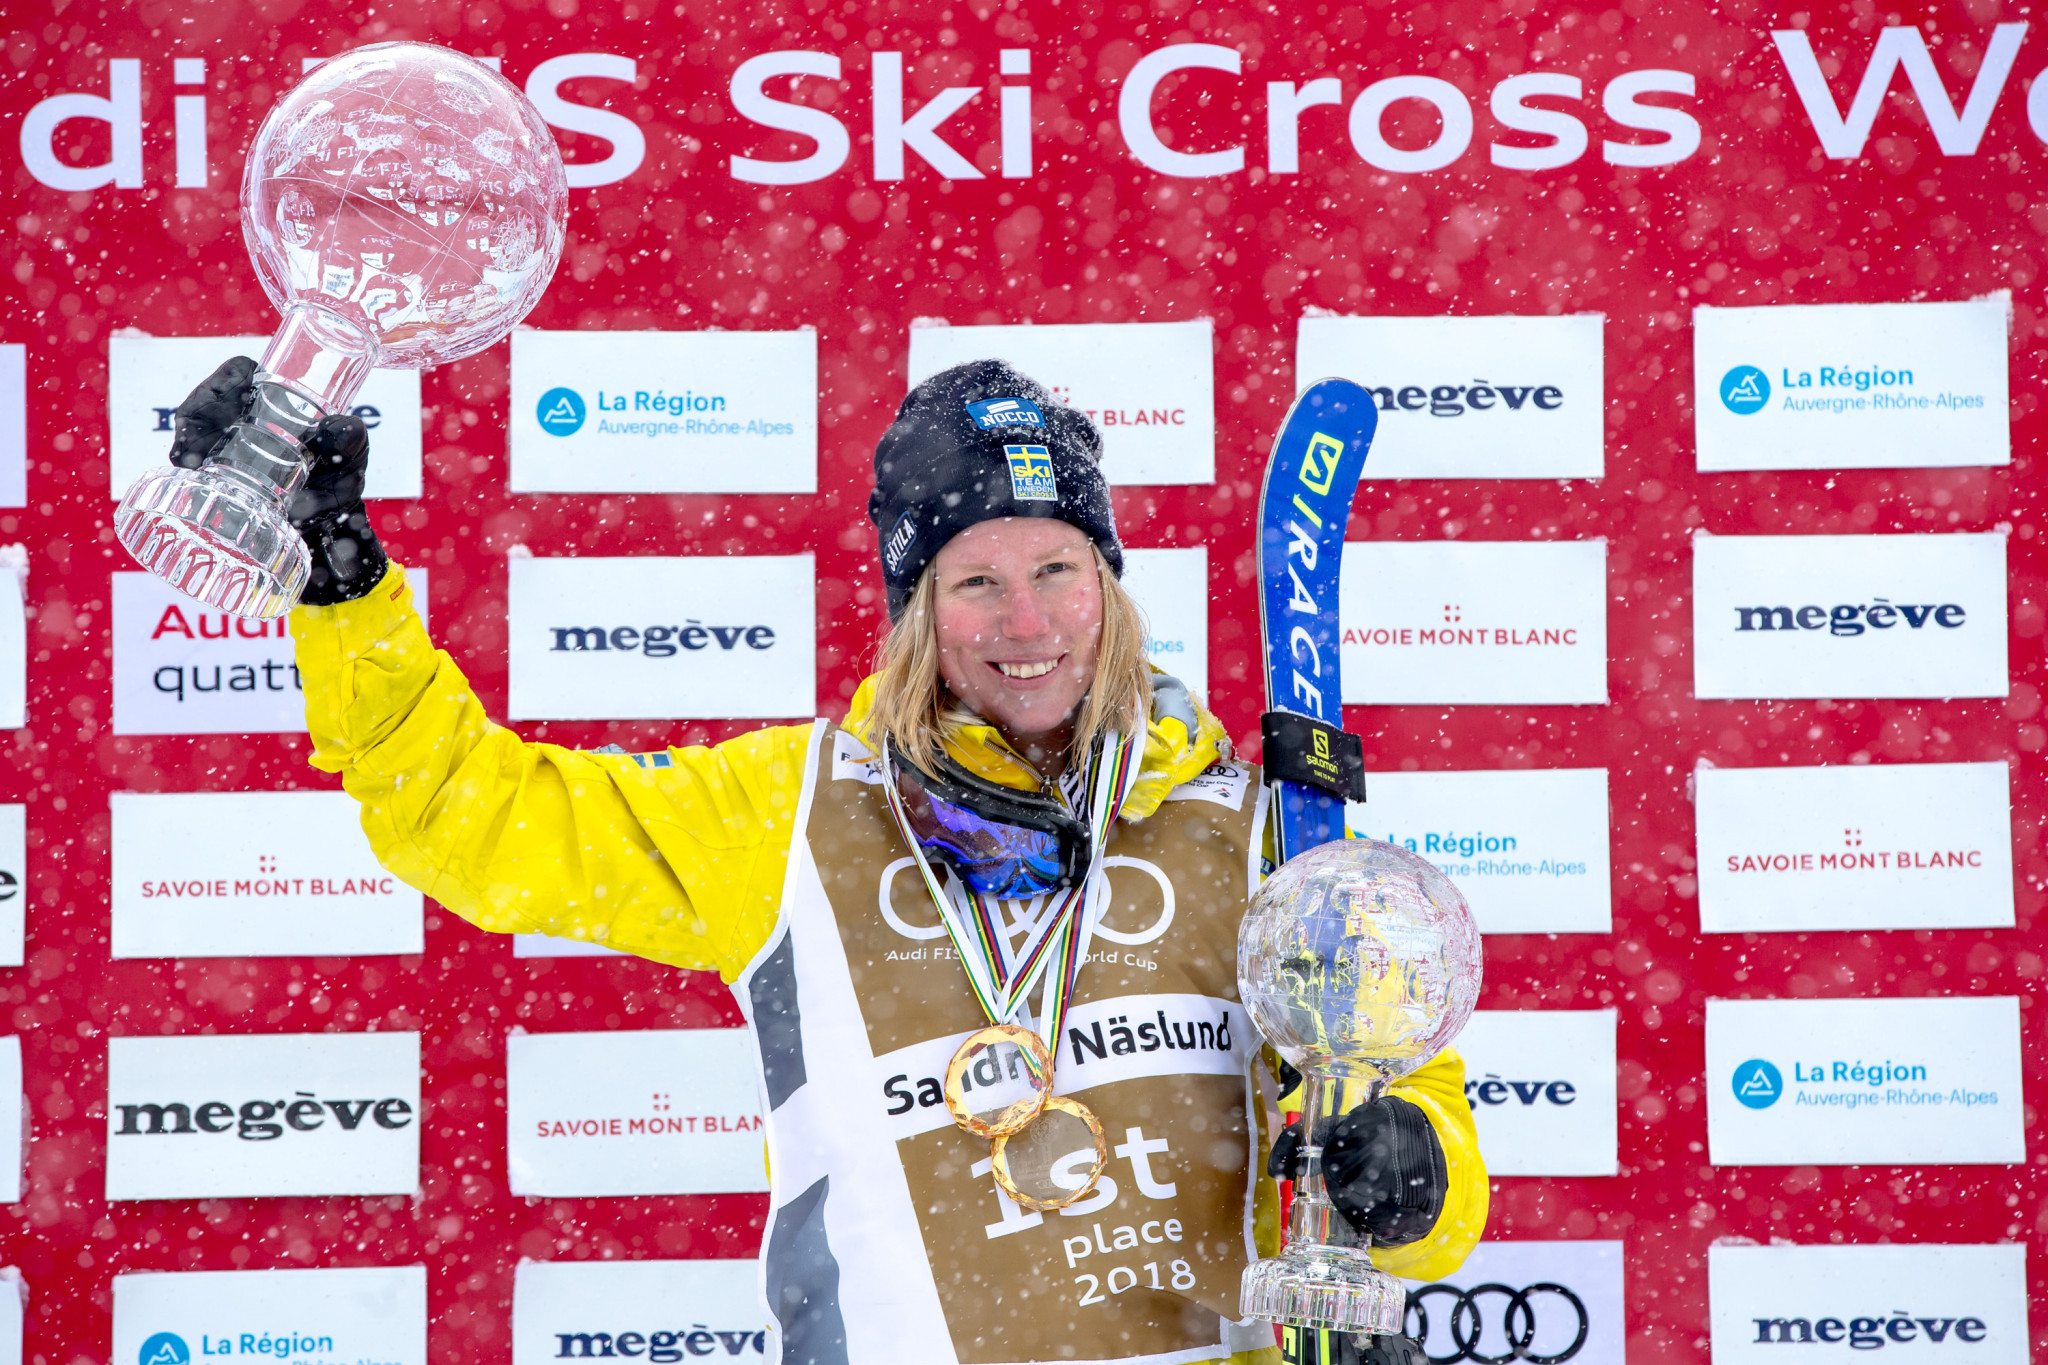 Two from two for Naeslund at Feldberg Ski Cross World Cup